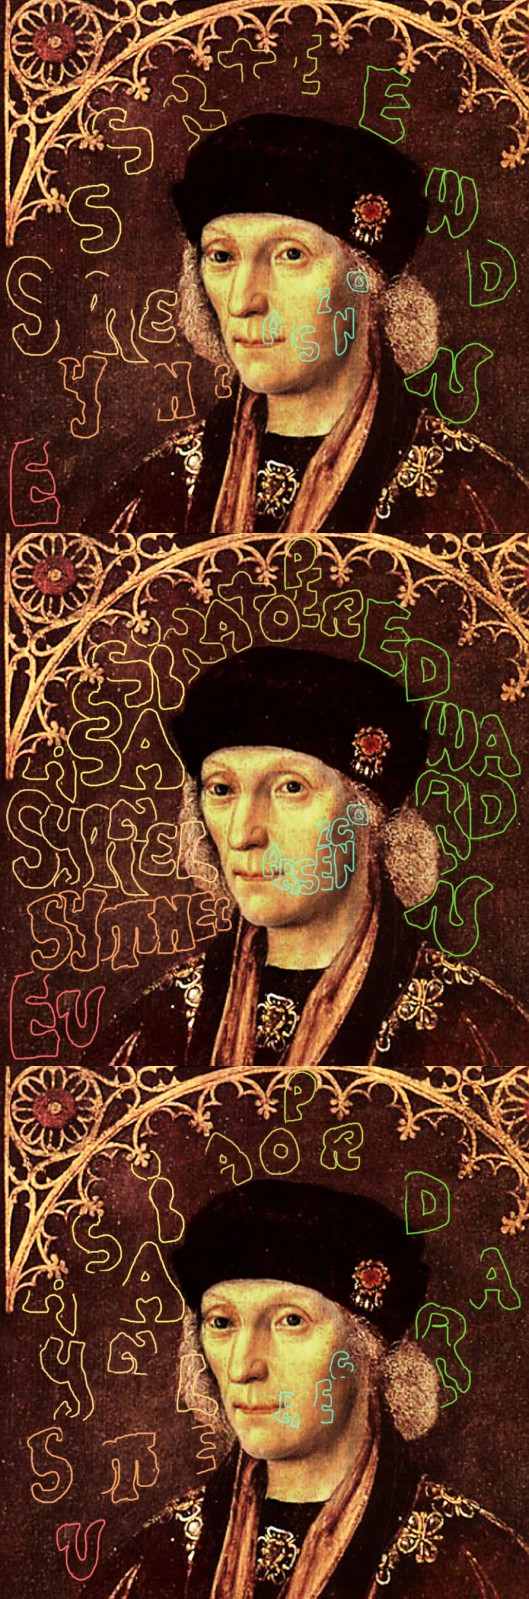 Sir Edwrad Guildford 'Henry VII' 1509. Declaration that he murdered Henry with Arsenic